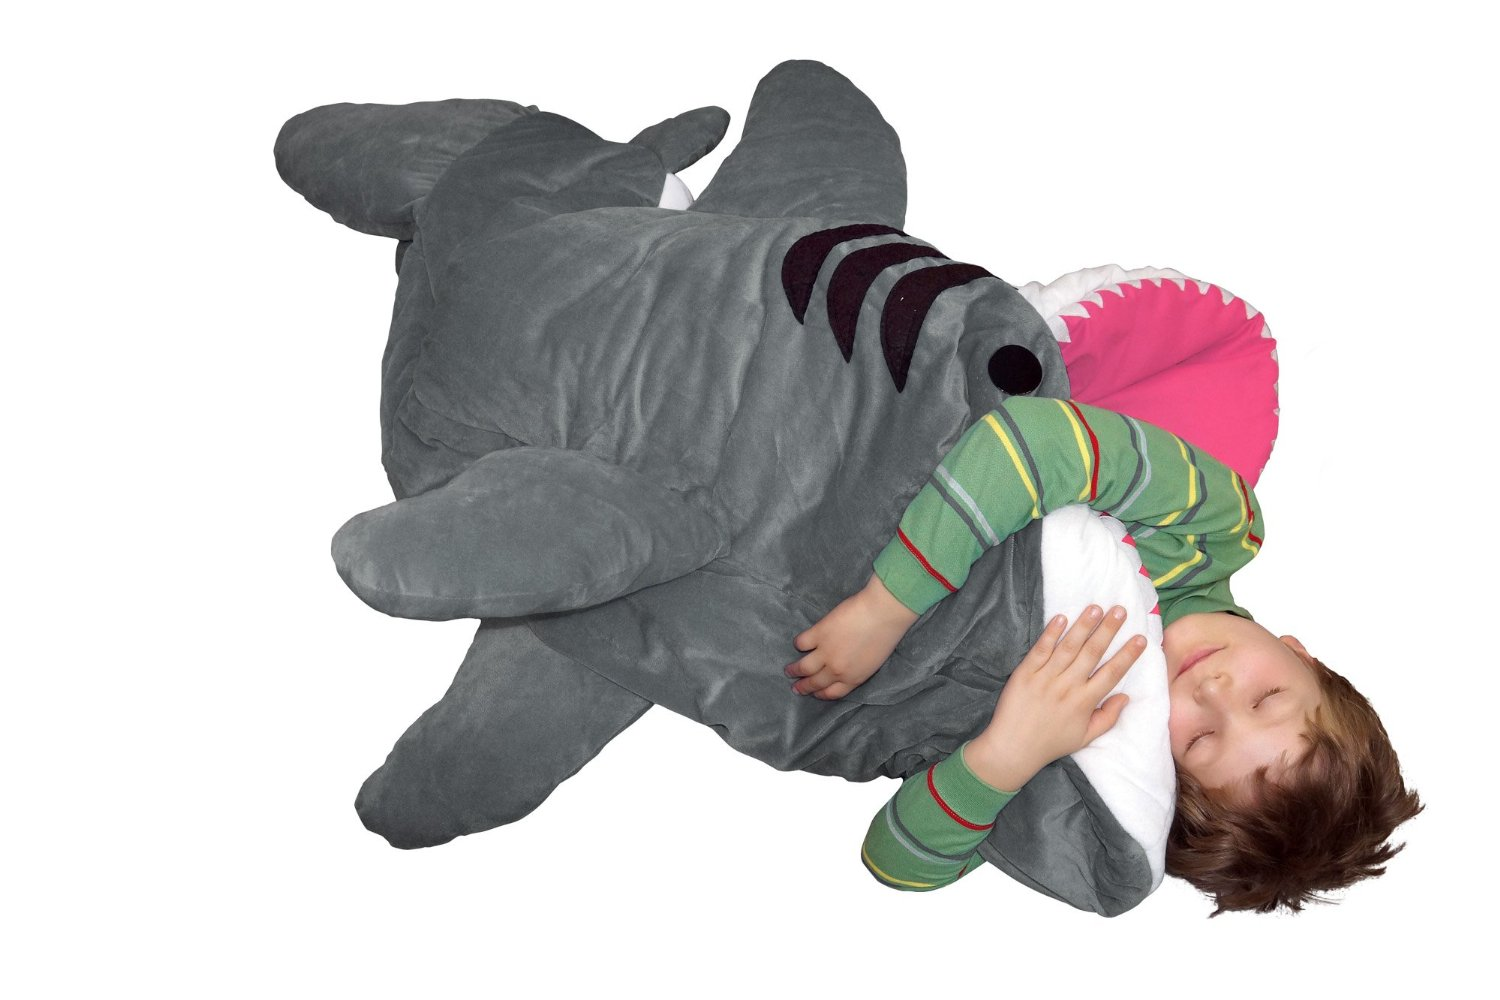 Chumbuddies: giant marine animals you sleep inside of